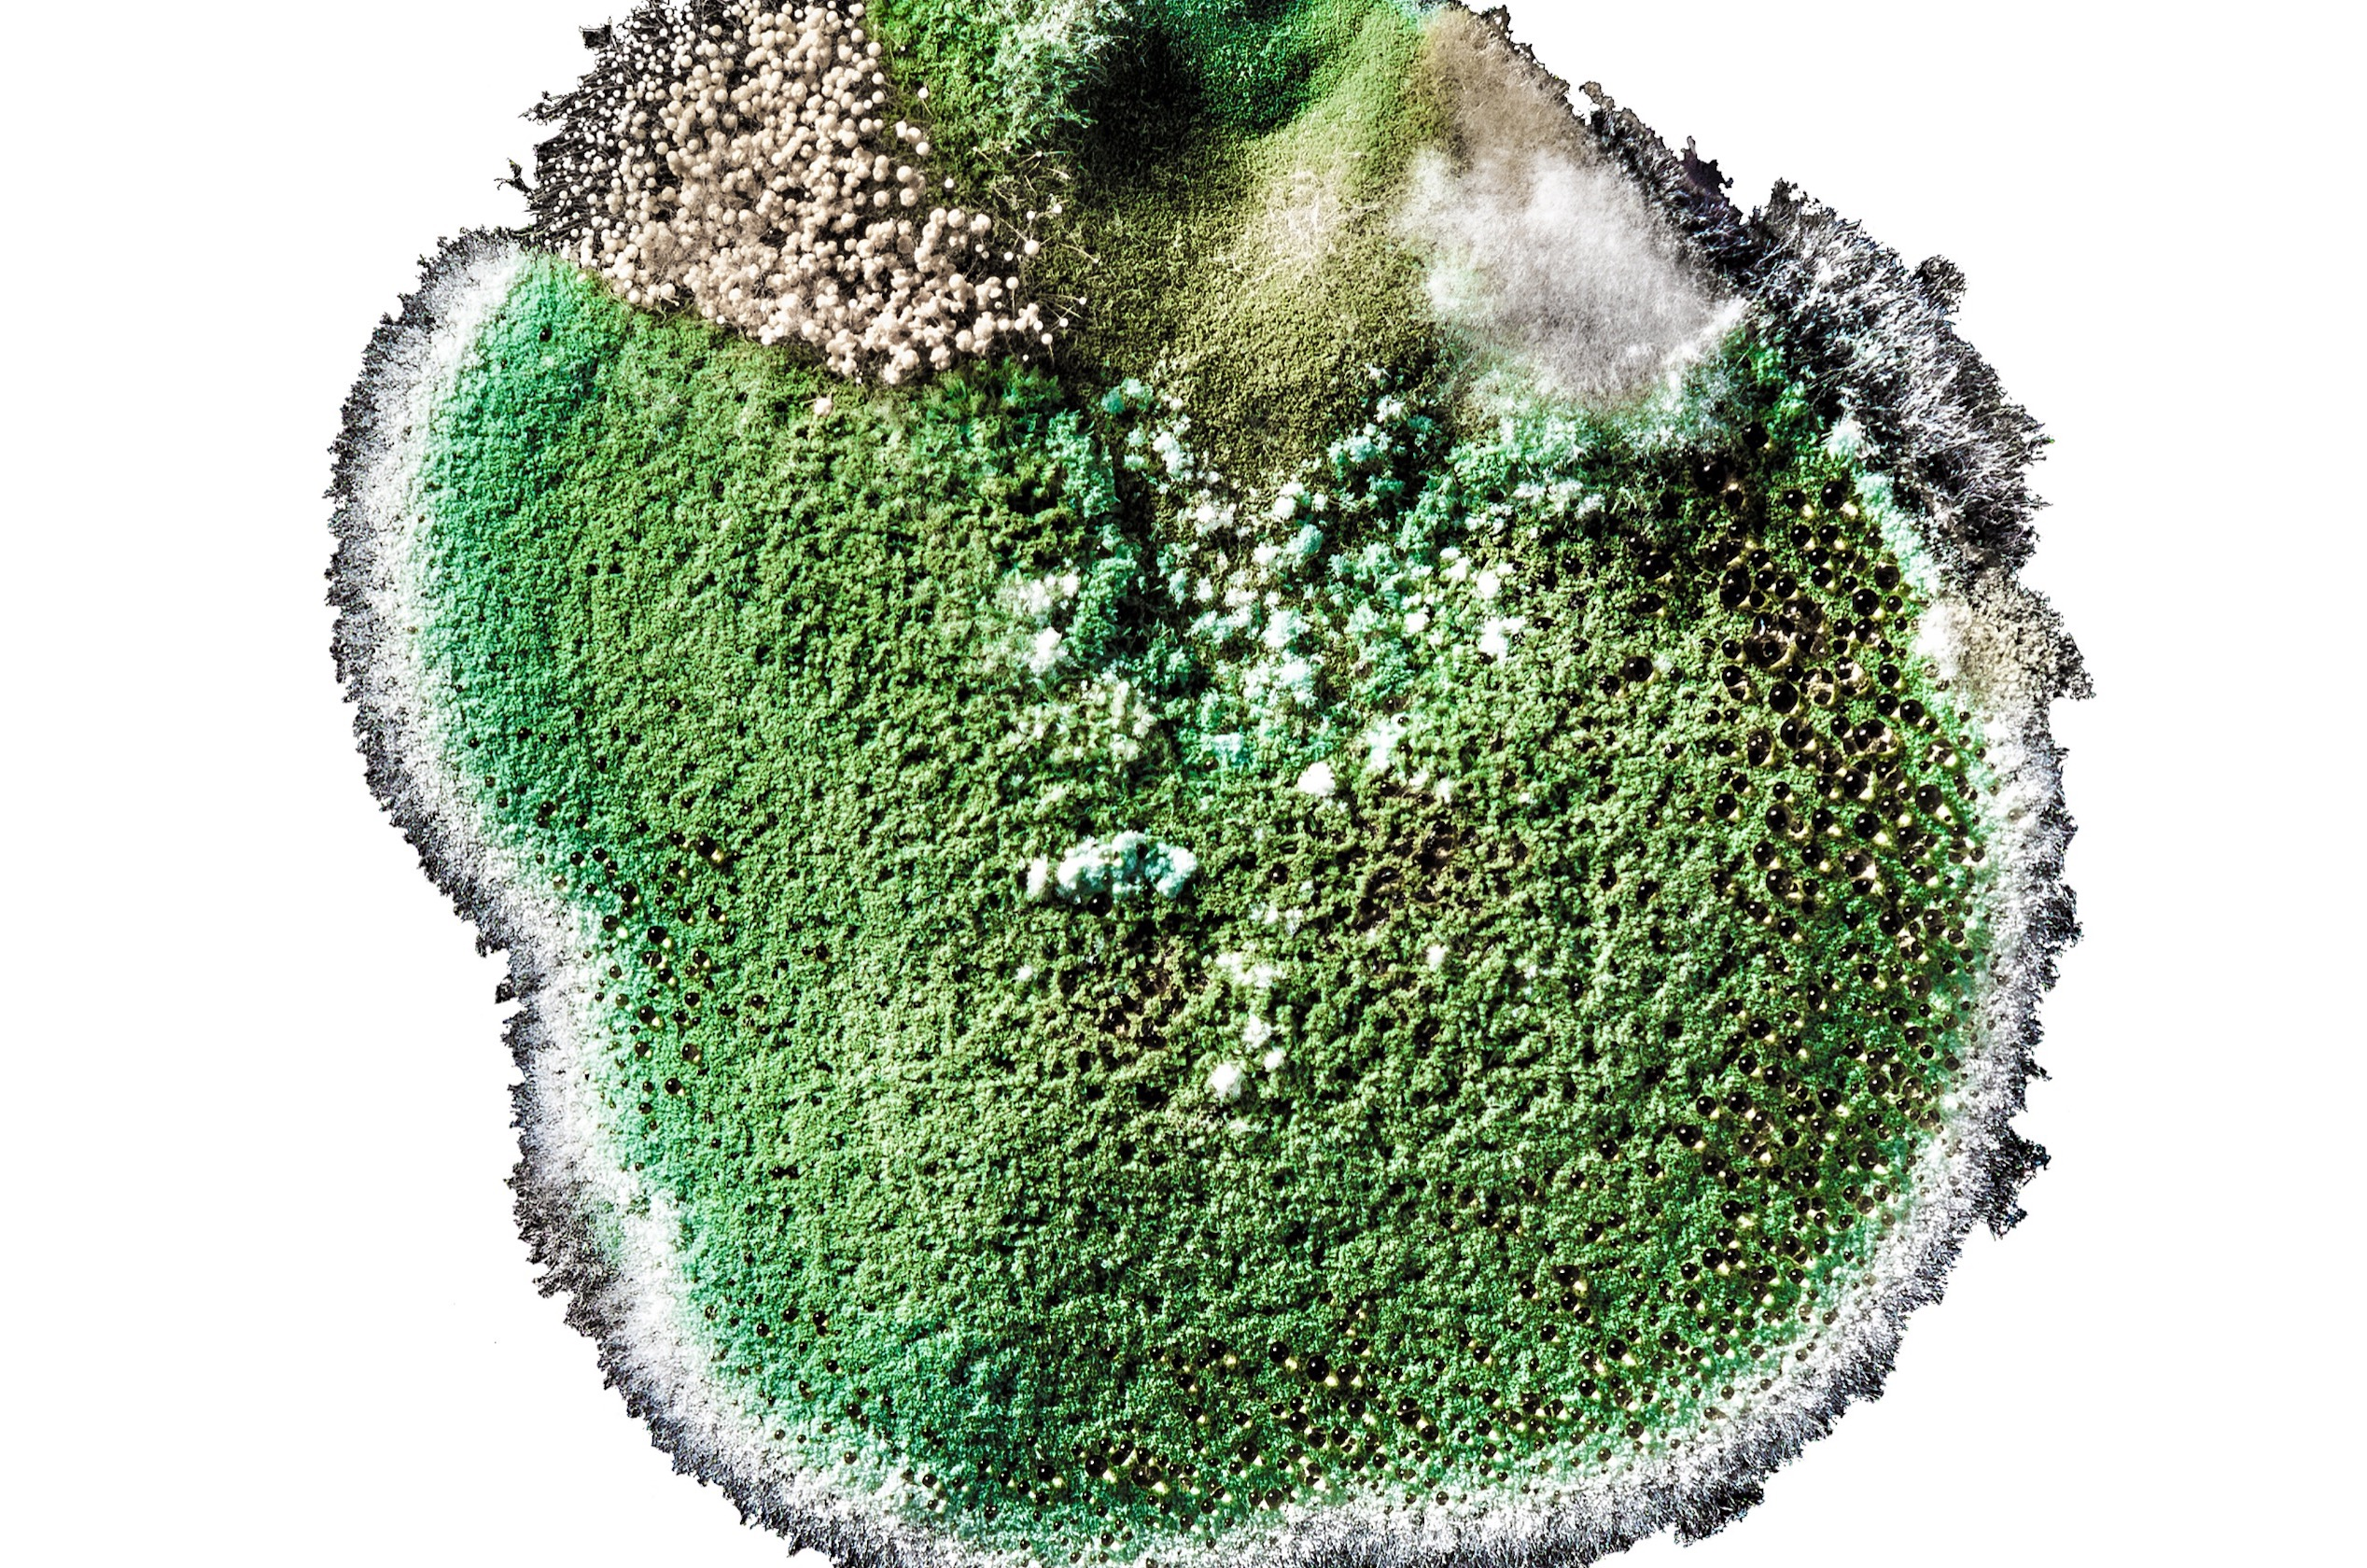 A close-up view of mold.